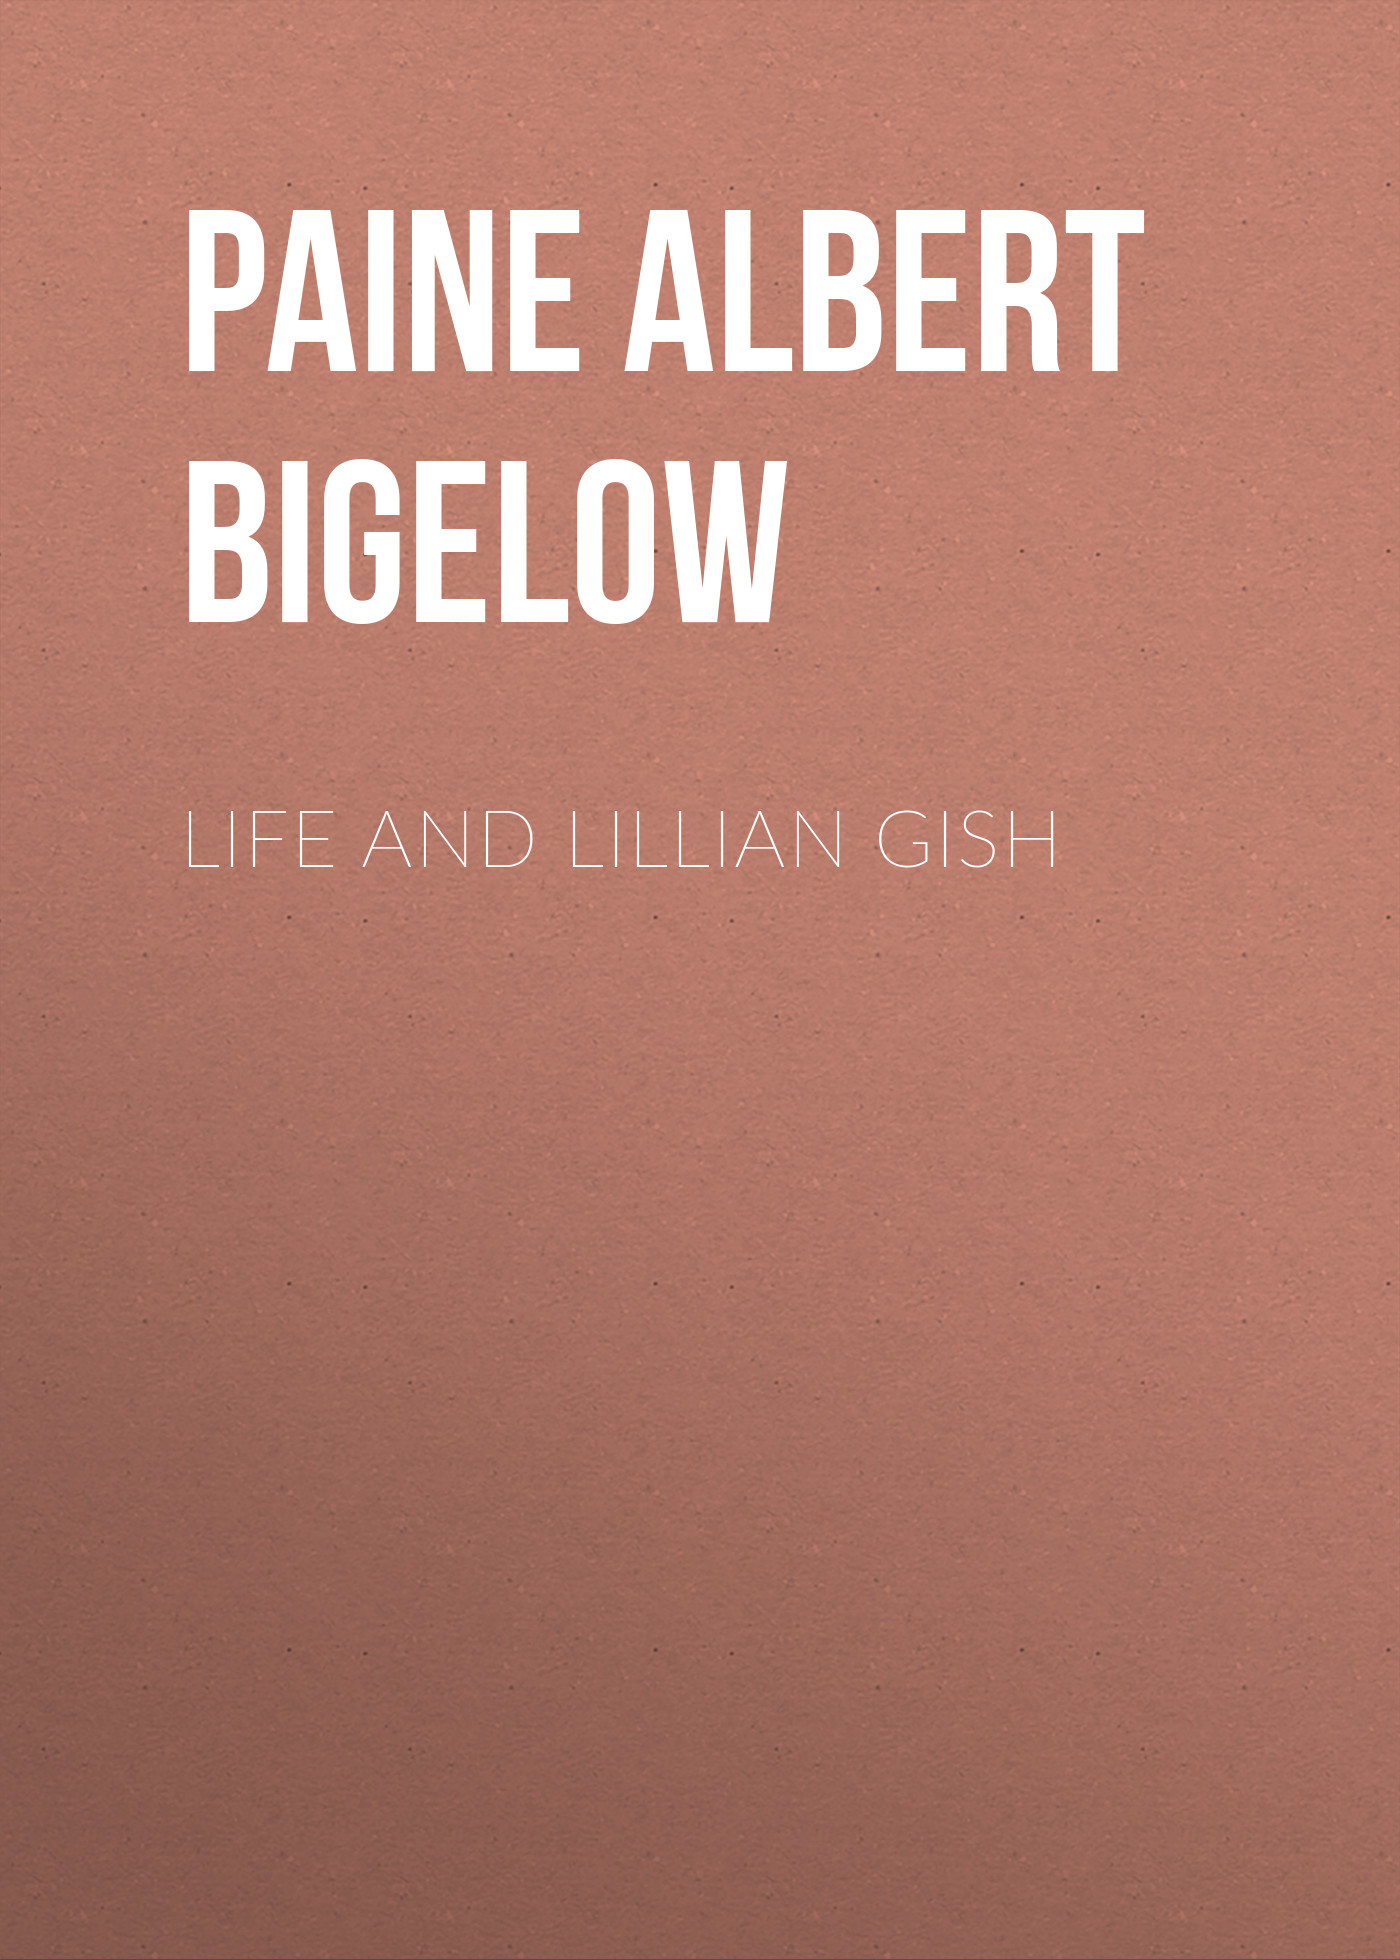 Фото - Paine Albert Bigelow Life and Lillian Gish paine albert bigelow mark twain a biography volume ii part 1 1886 1900